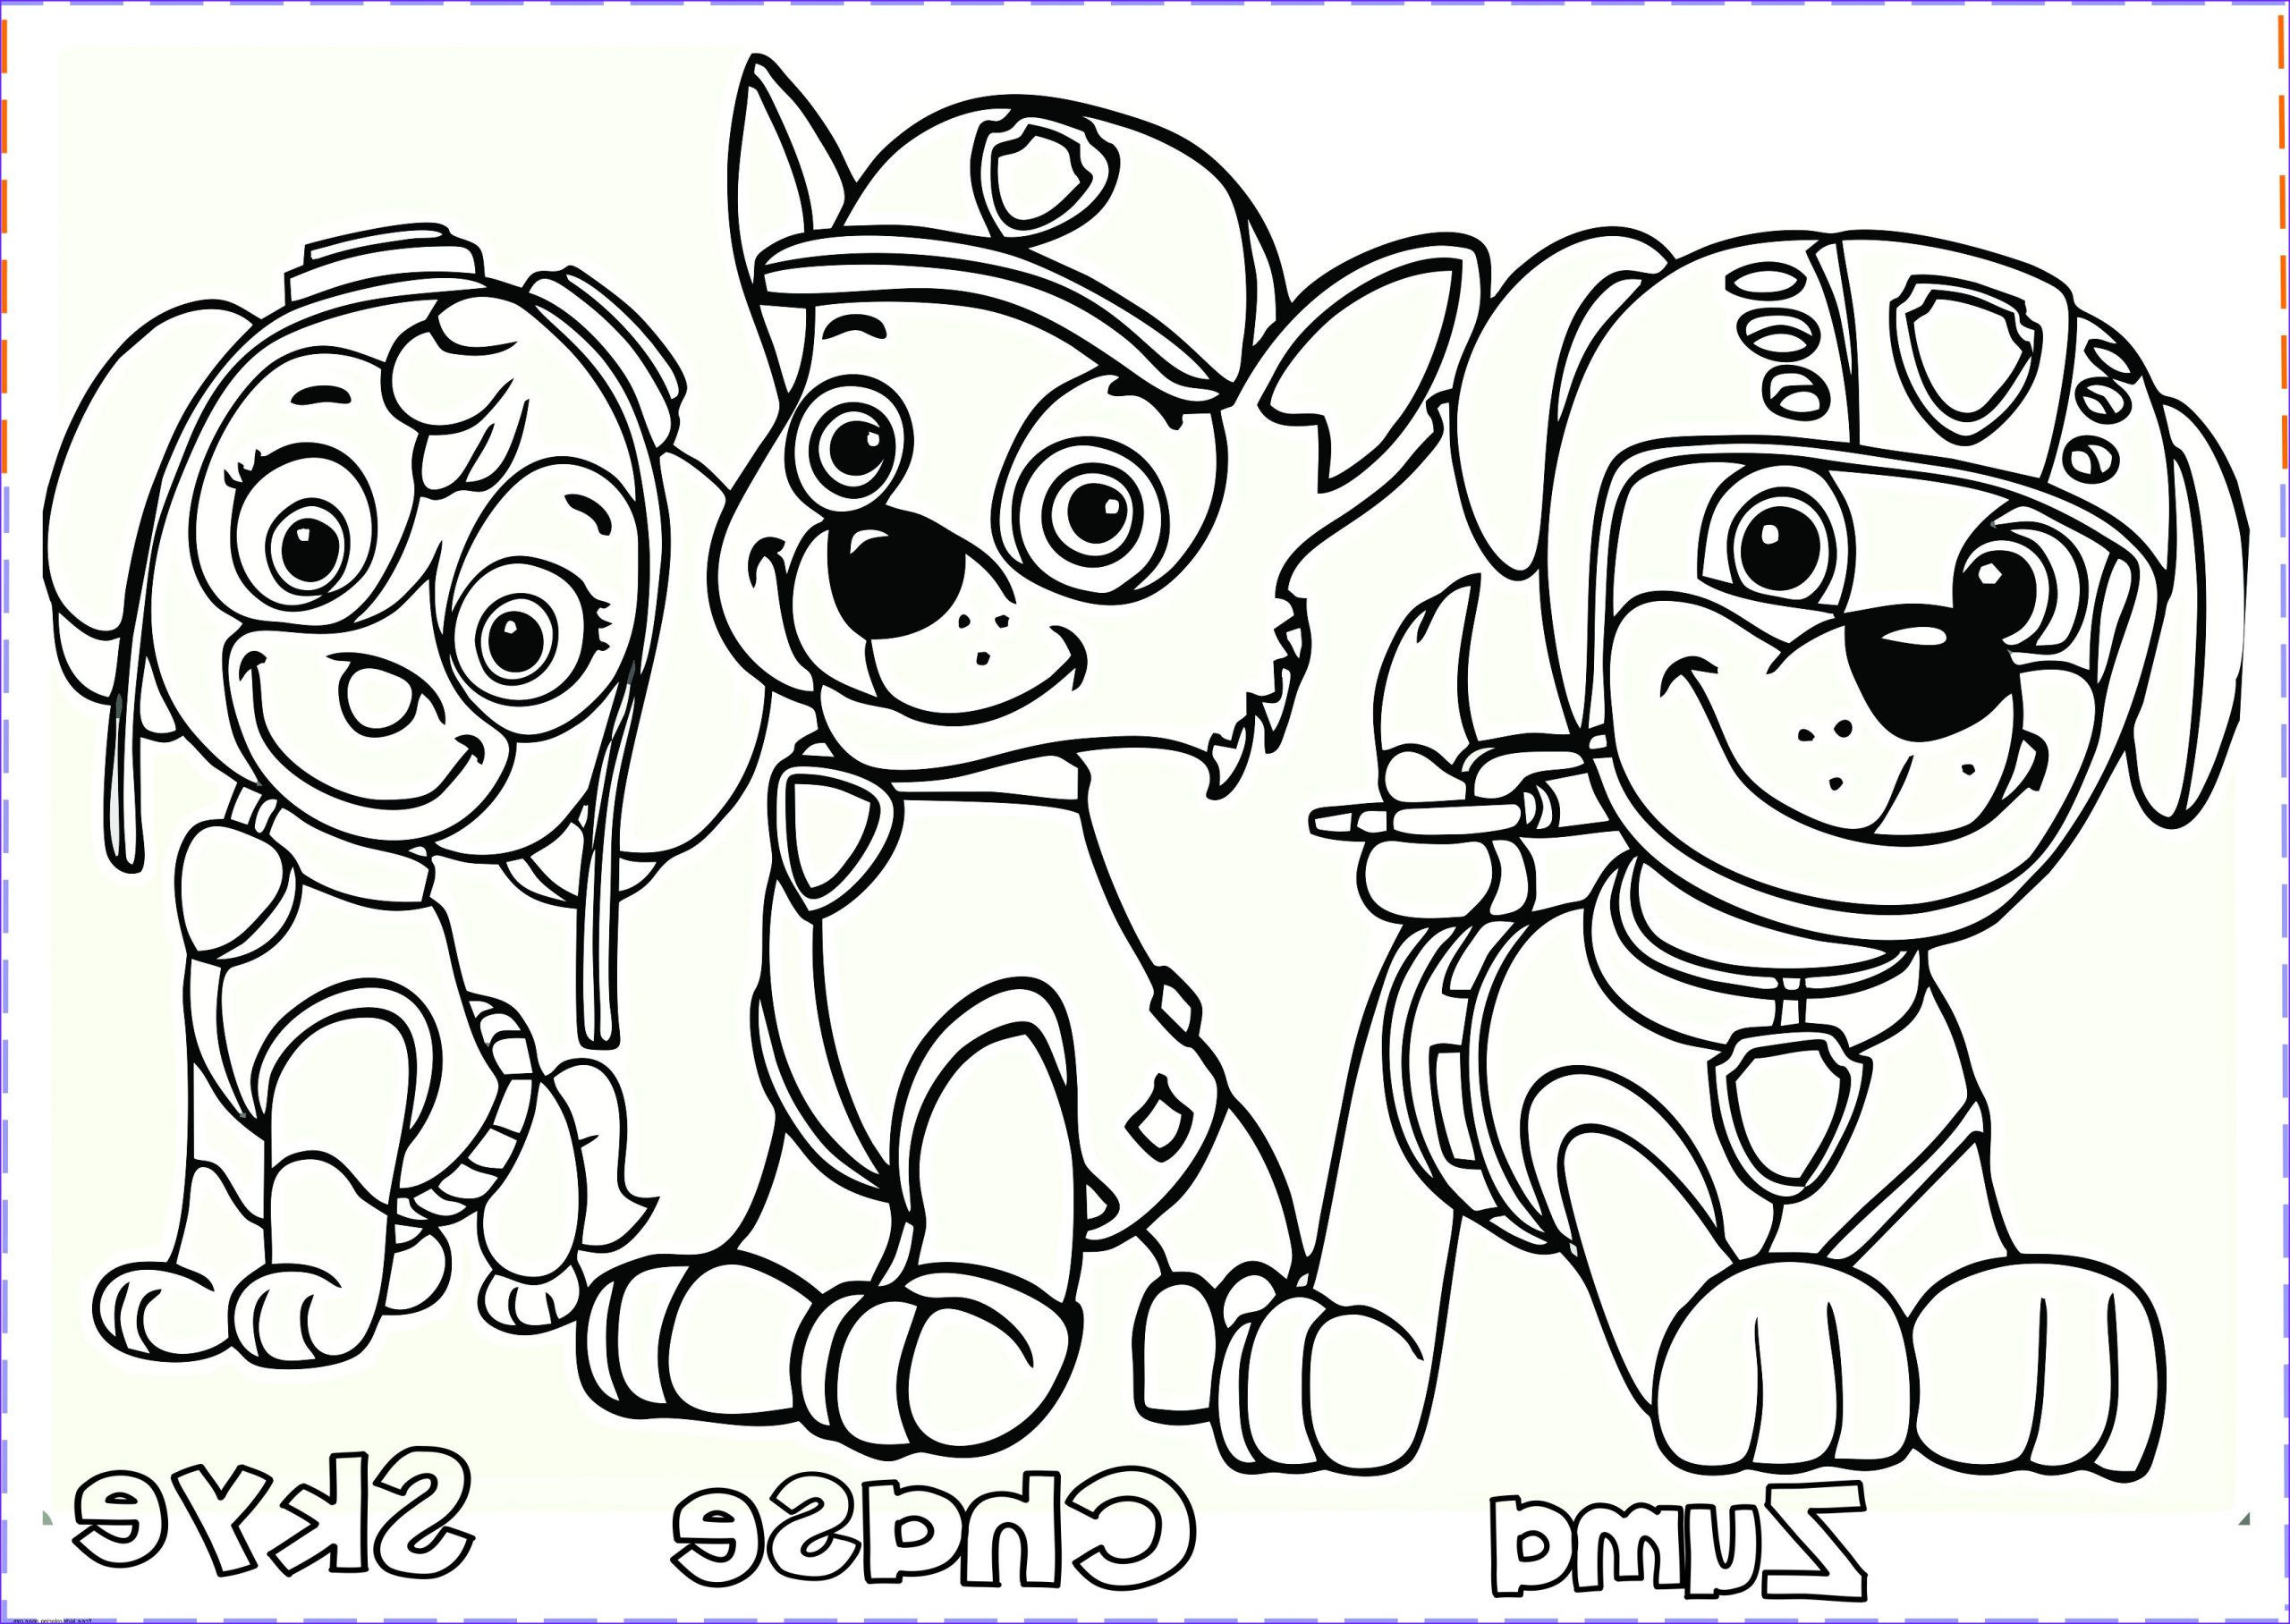 Paw Patrol Printable Coloring Page Beautiful Photos Story Books Free Coloring Pages